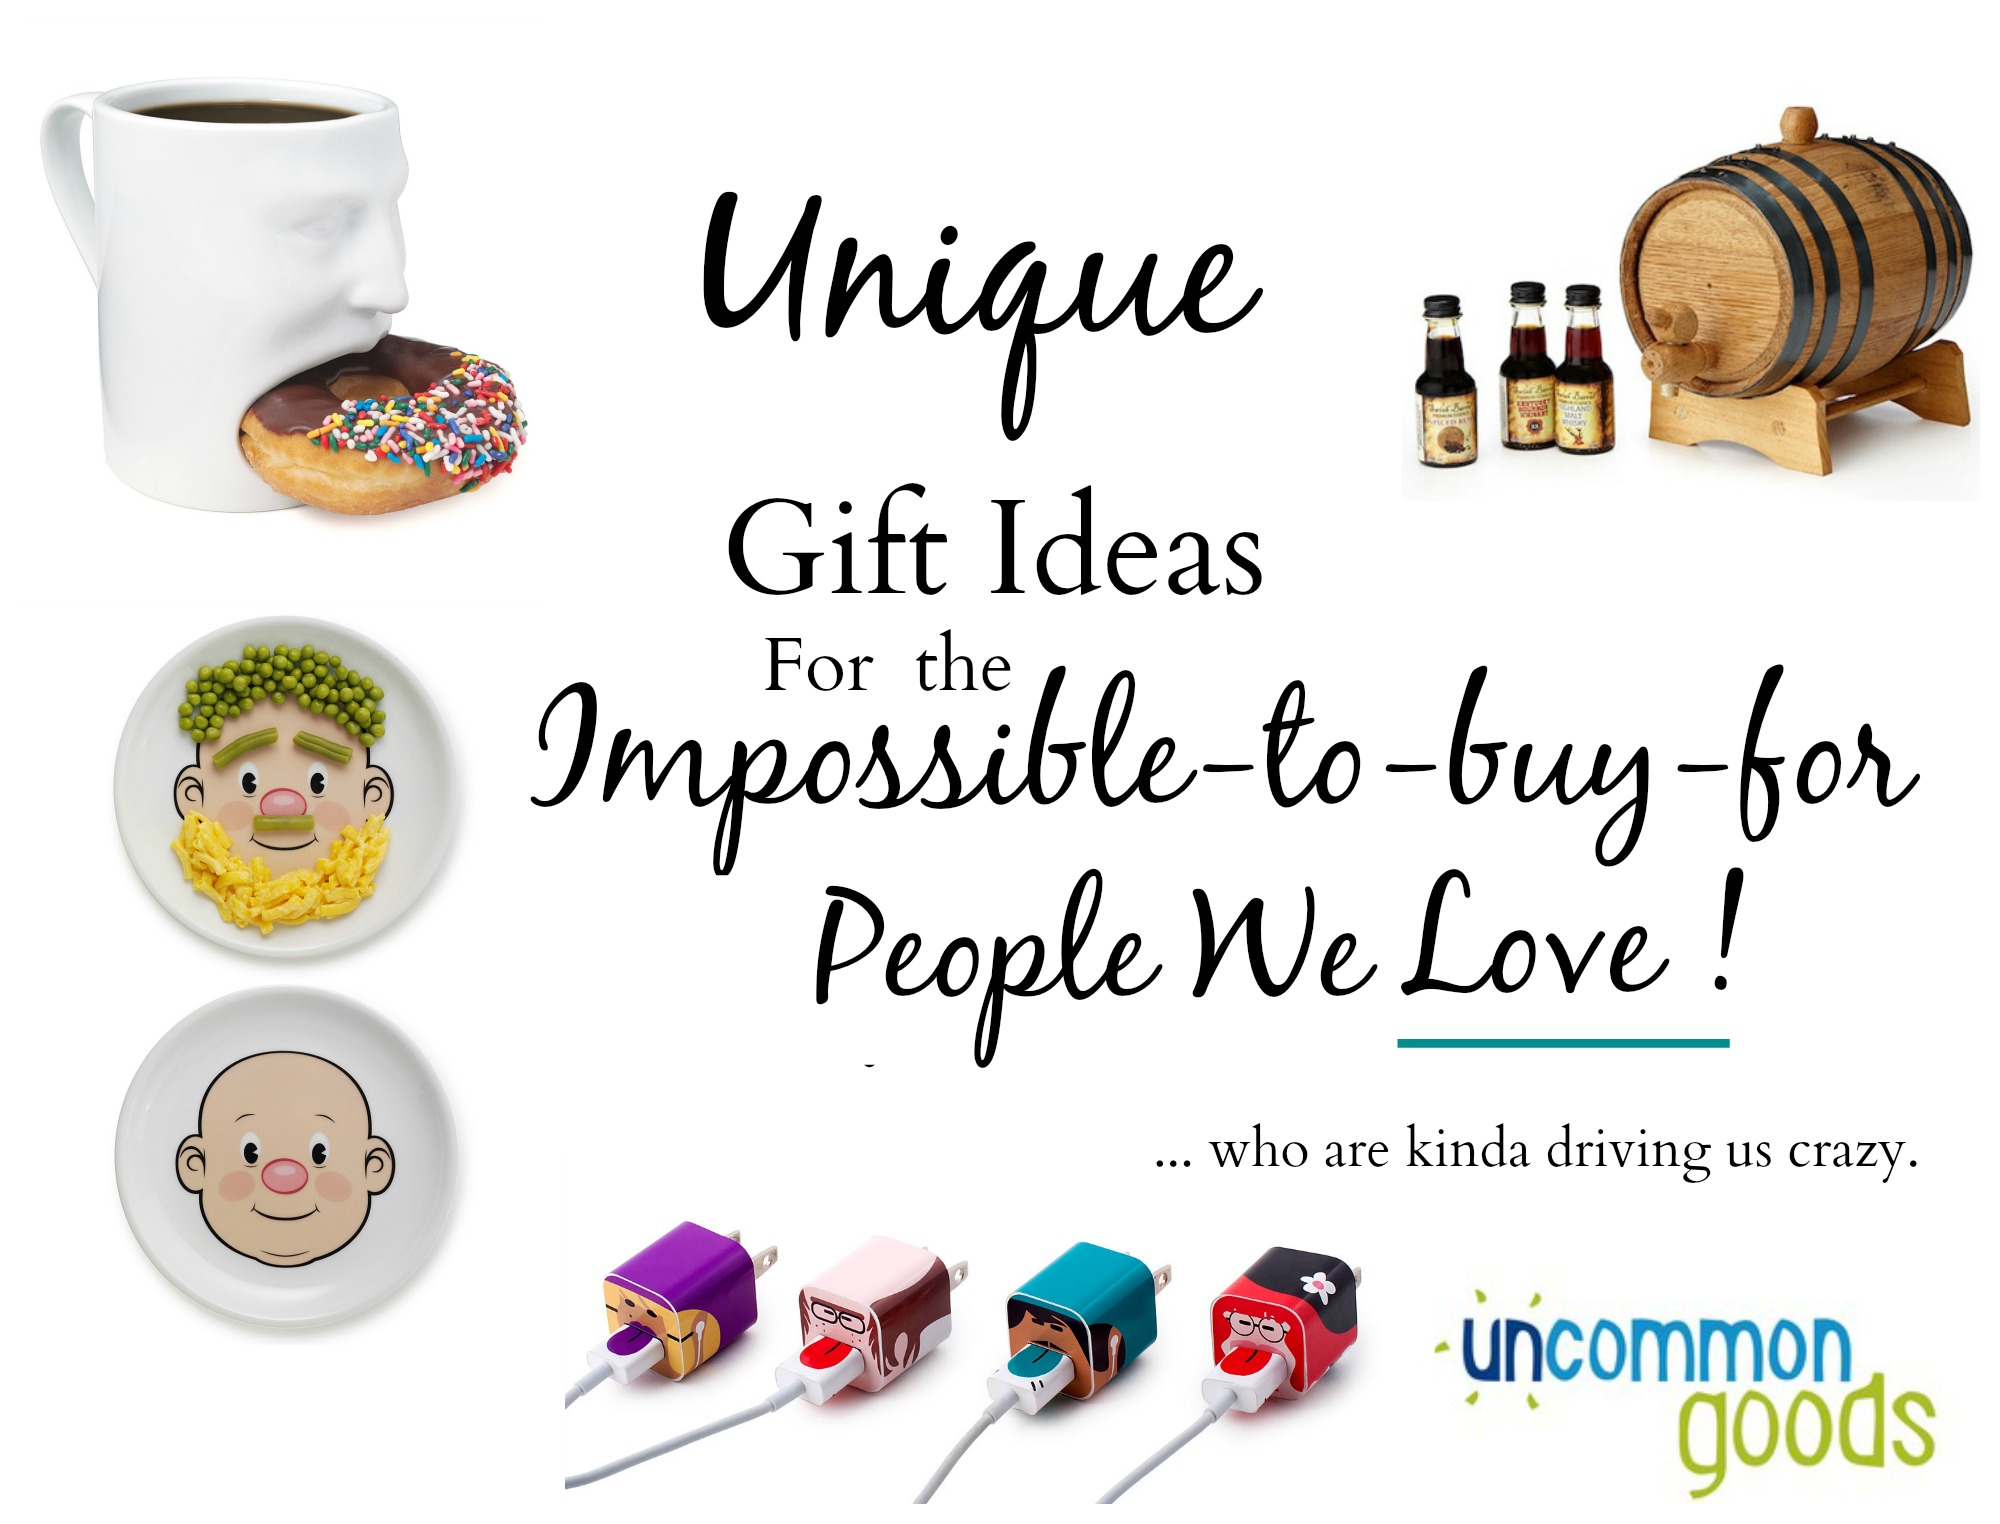 Unique Gift Ideas For Those Hard-To-Buy-For People We Love ... But ...